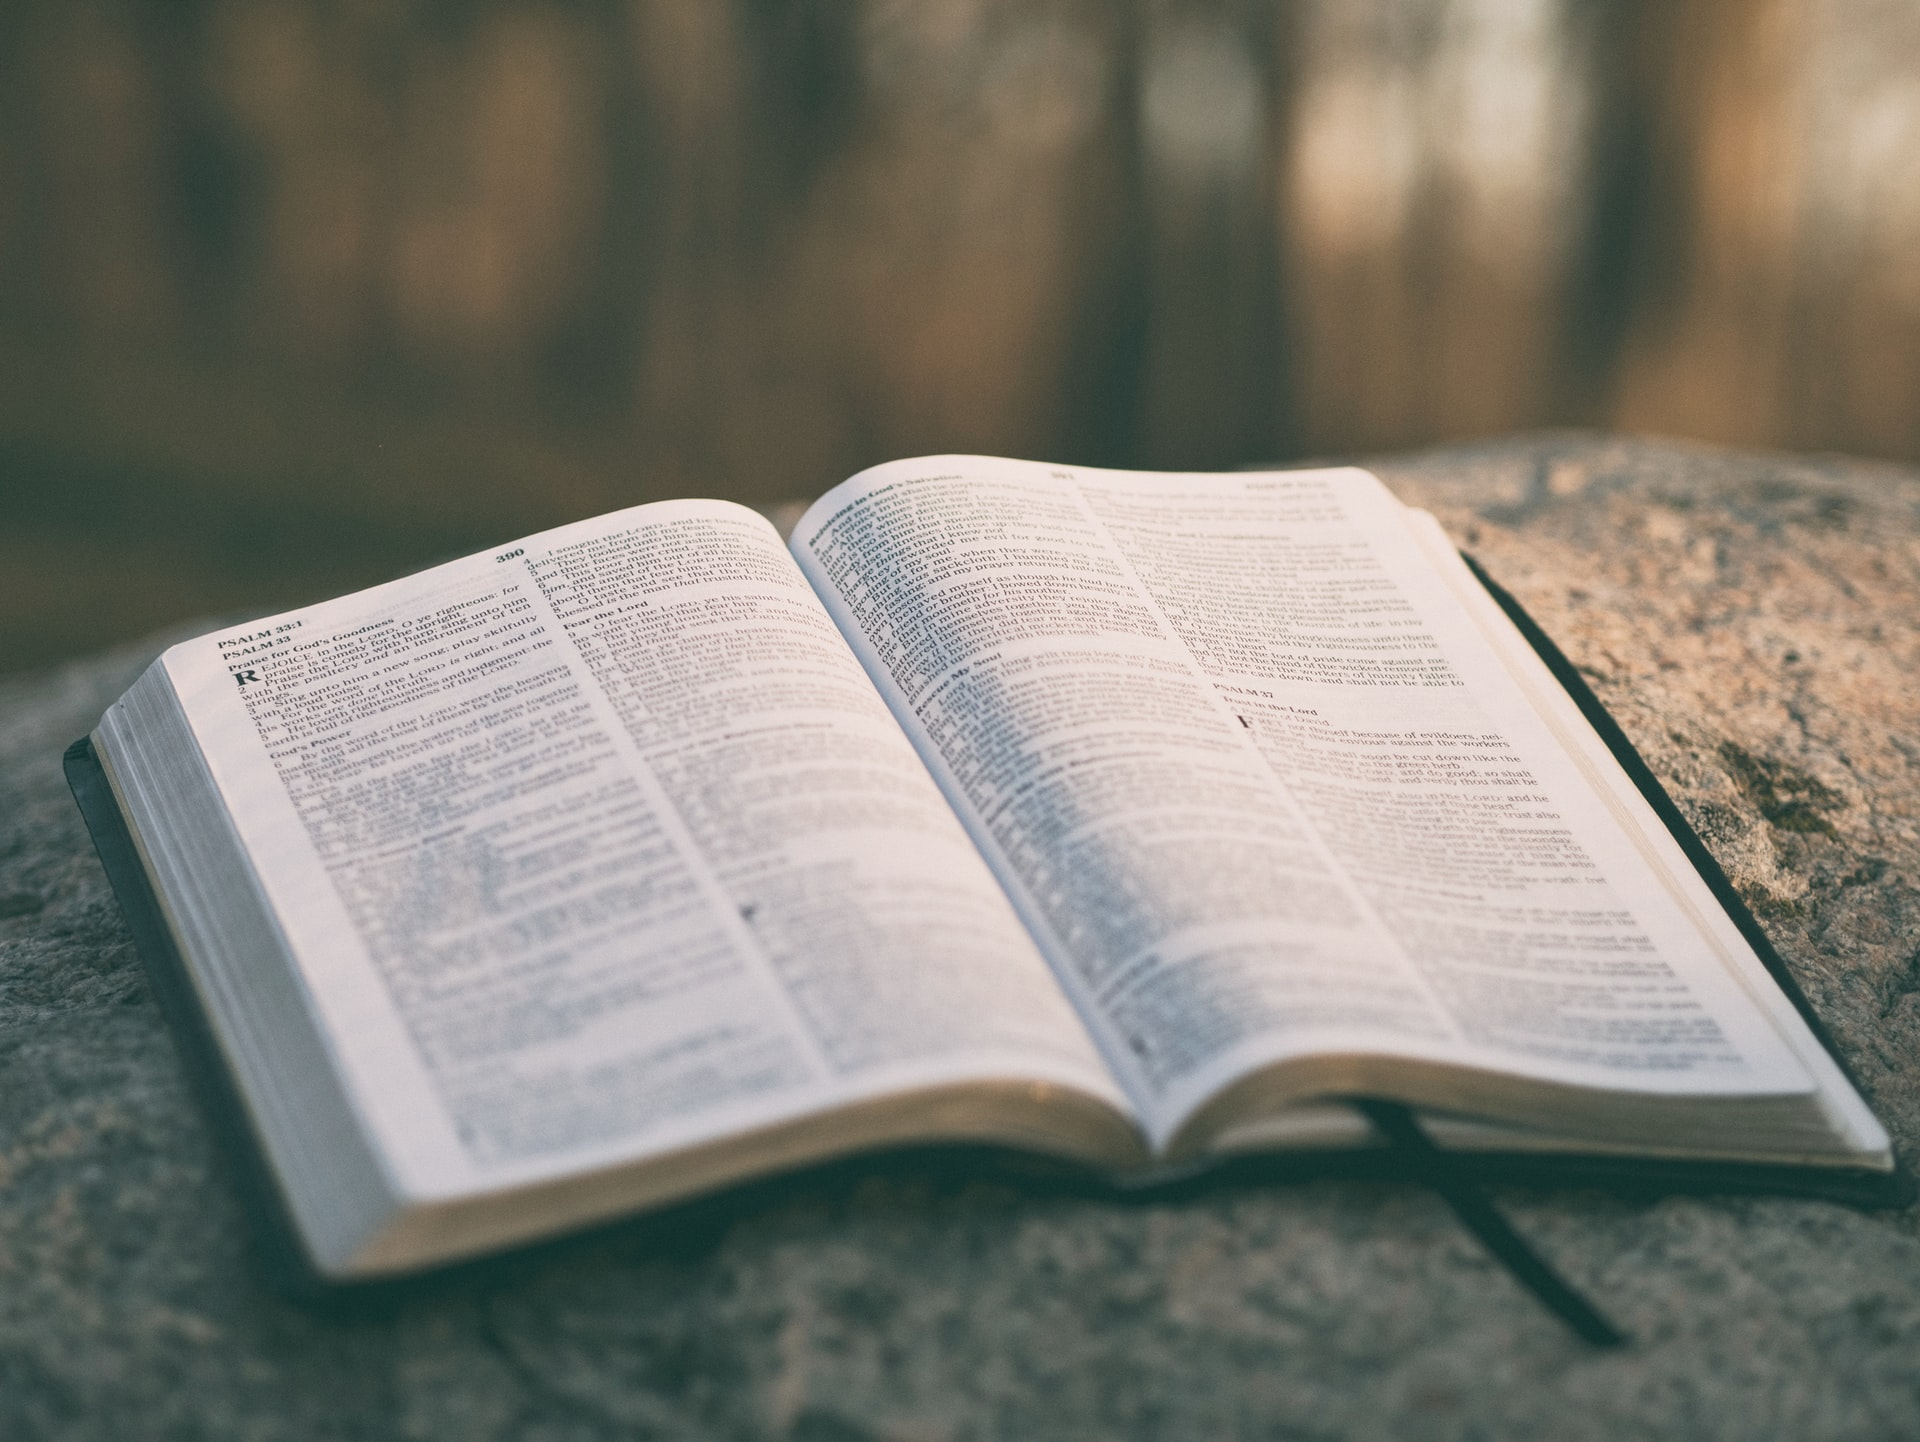 A bible sits on a table.